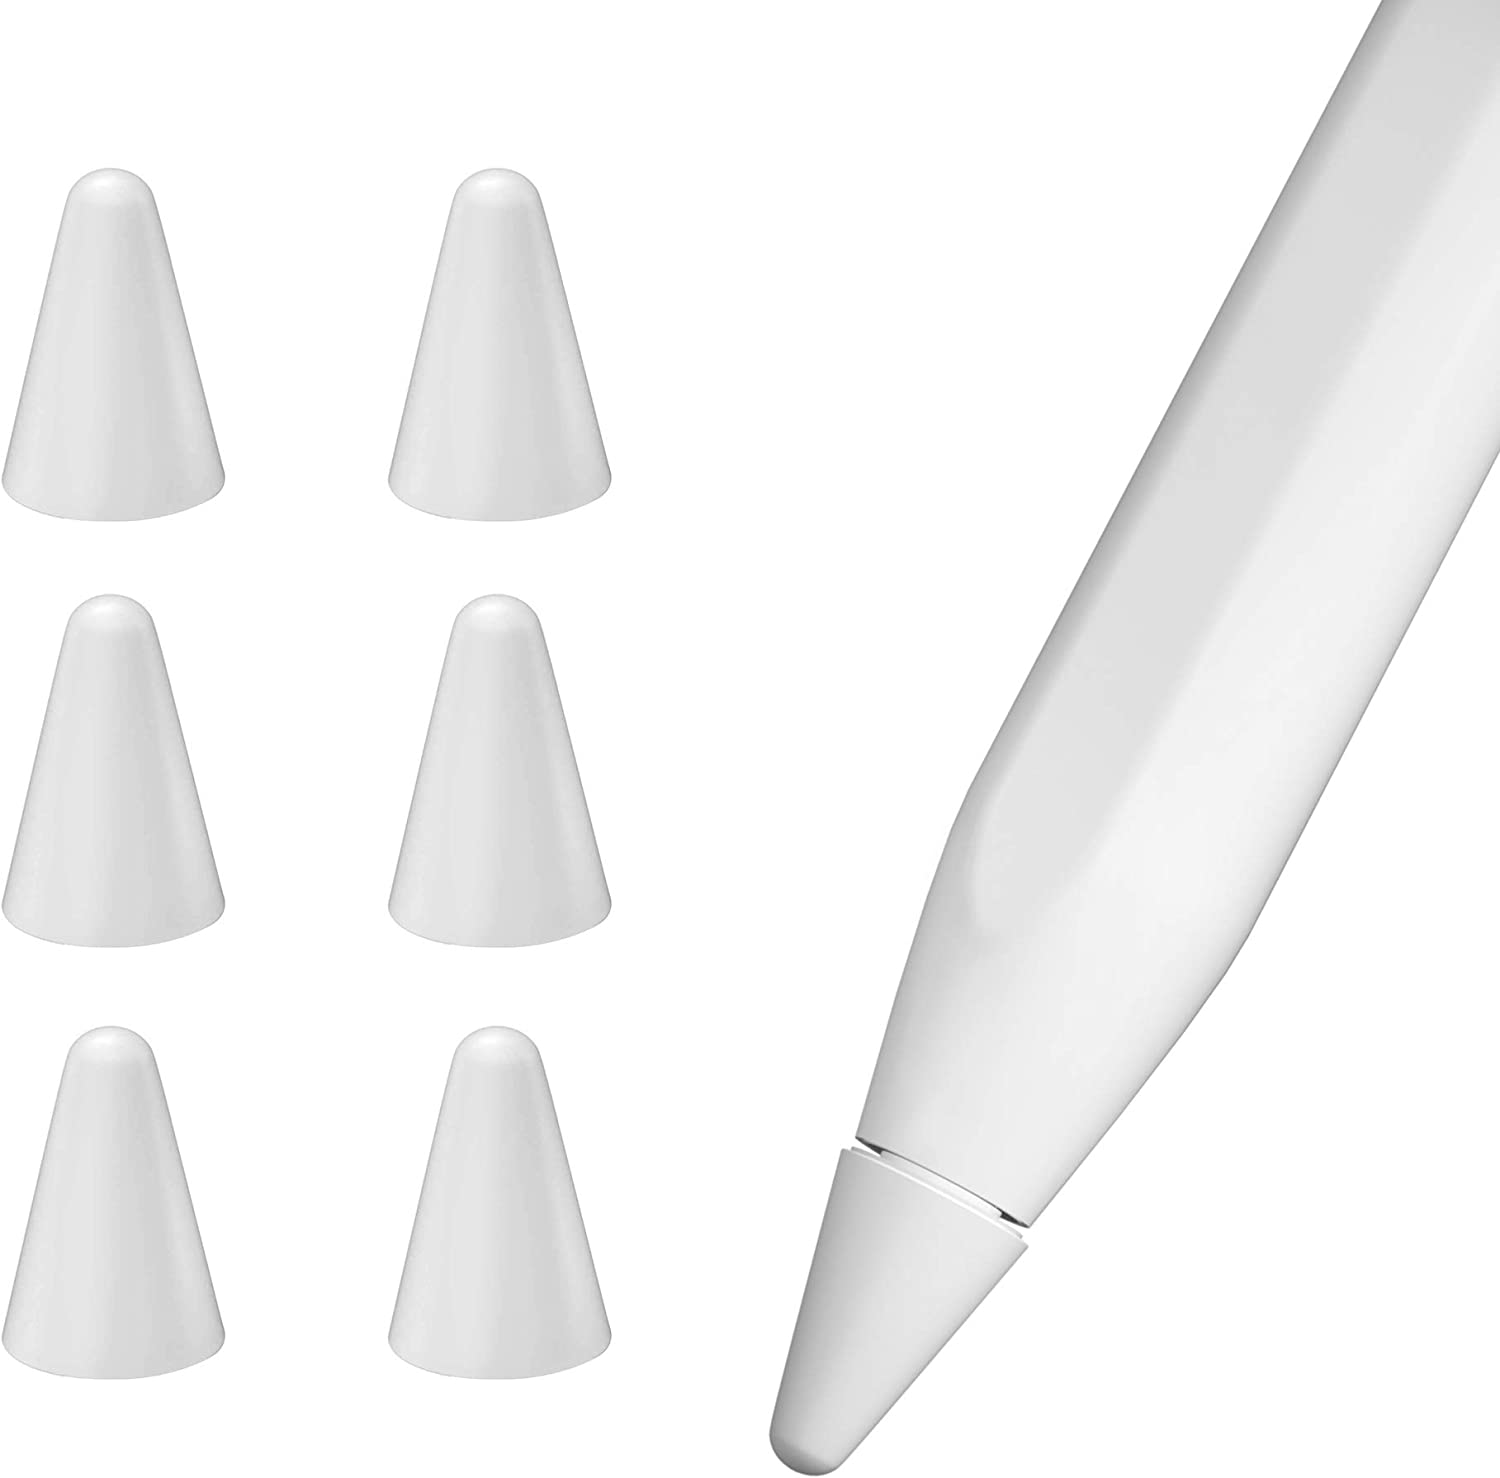 pzoz Protector Case Compatible with Apple Pencil Tips for 1st & 2nd Generation, Silicone Nibs Cover for iPad Pencil Tips and Replacement Writing Protection (6 Pcs) (White)